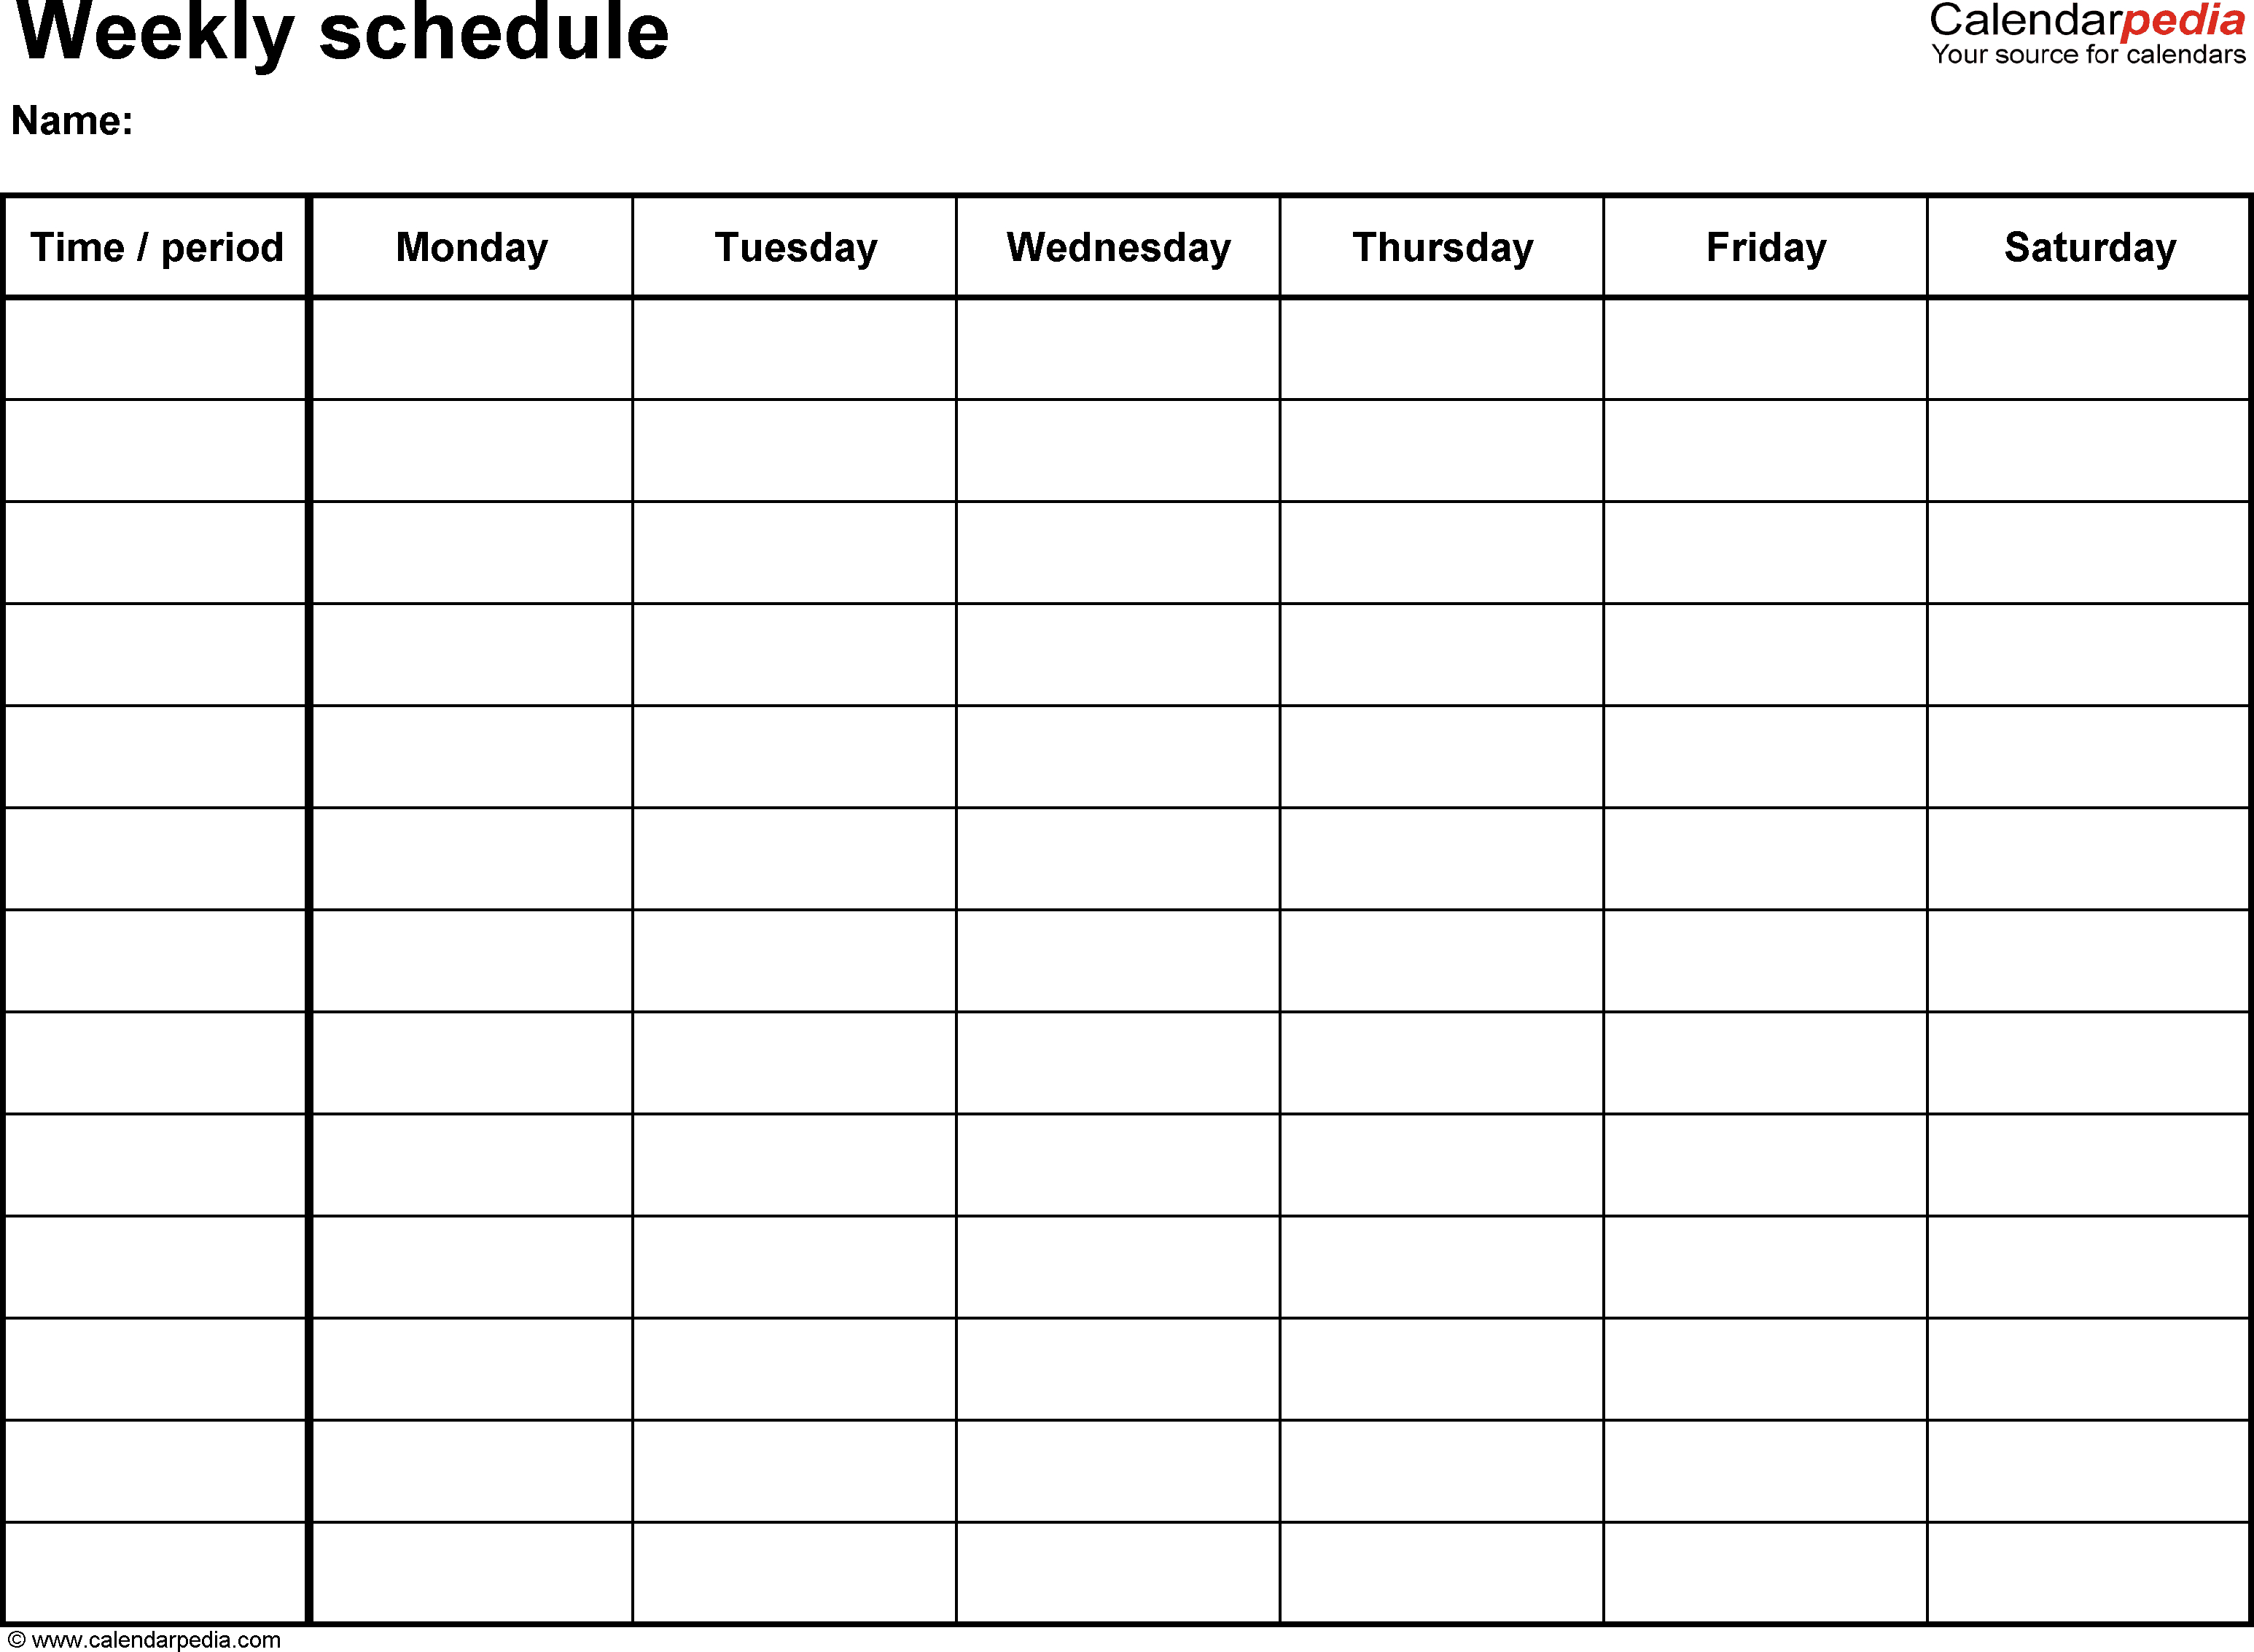 Free Weekly Schedule Templates For Word - 18 Templates - Free Printable Weekly Schedule